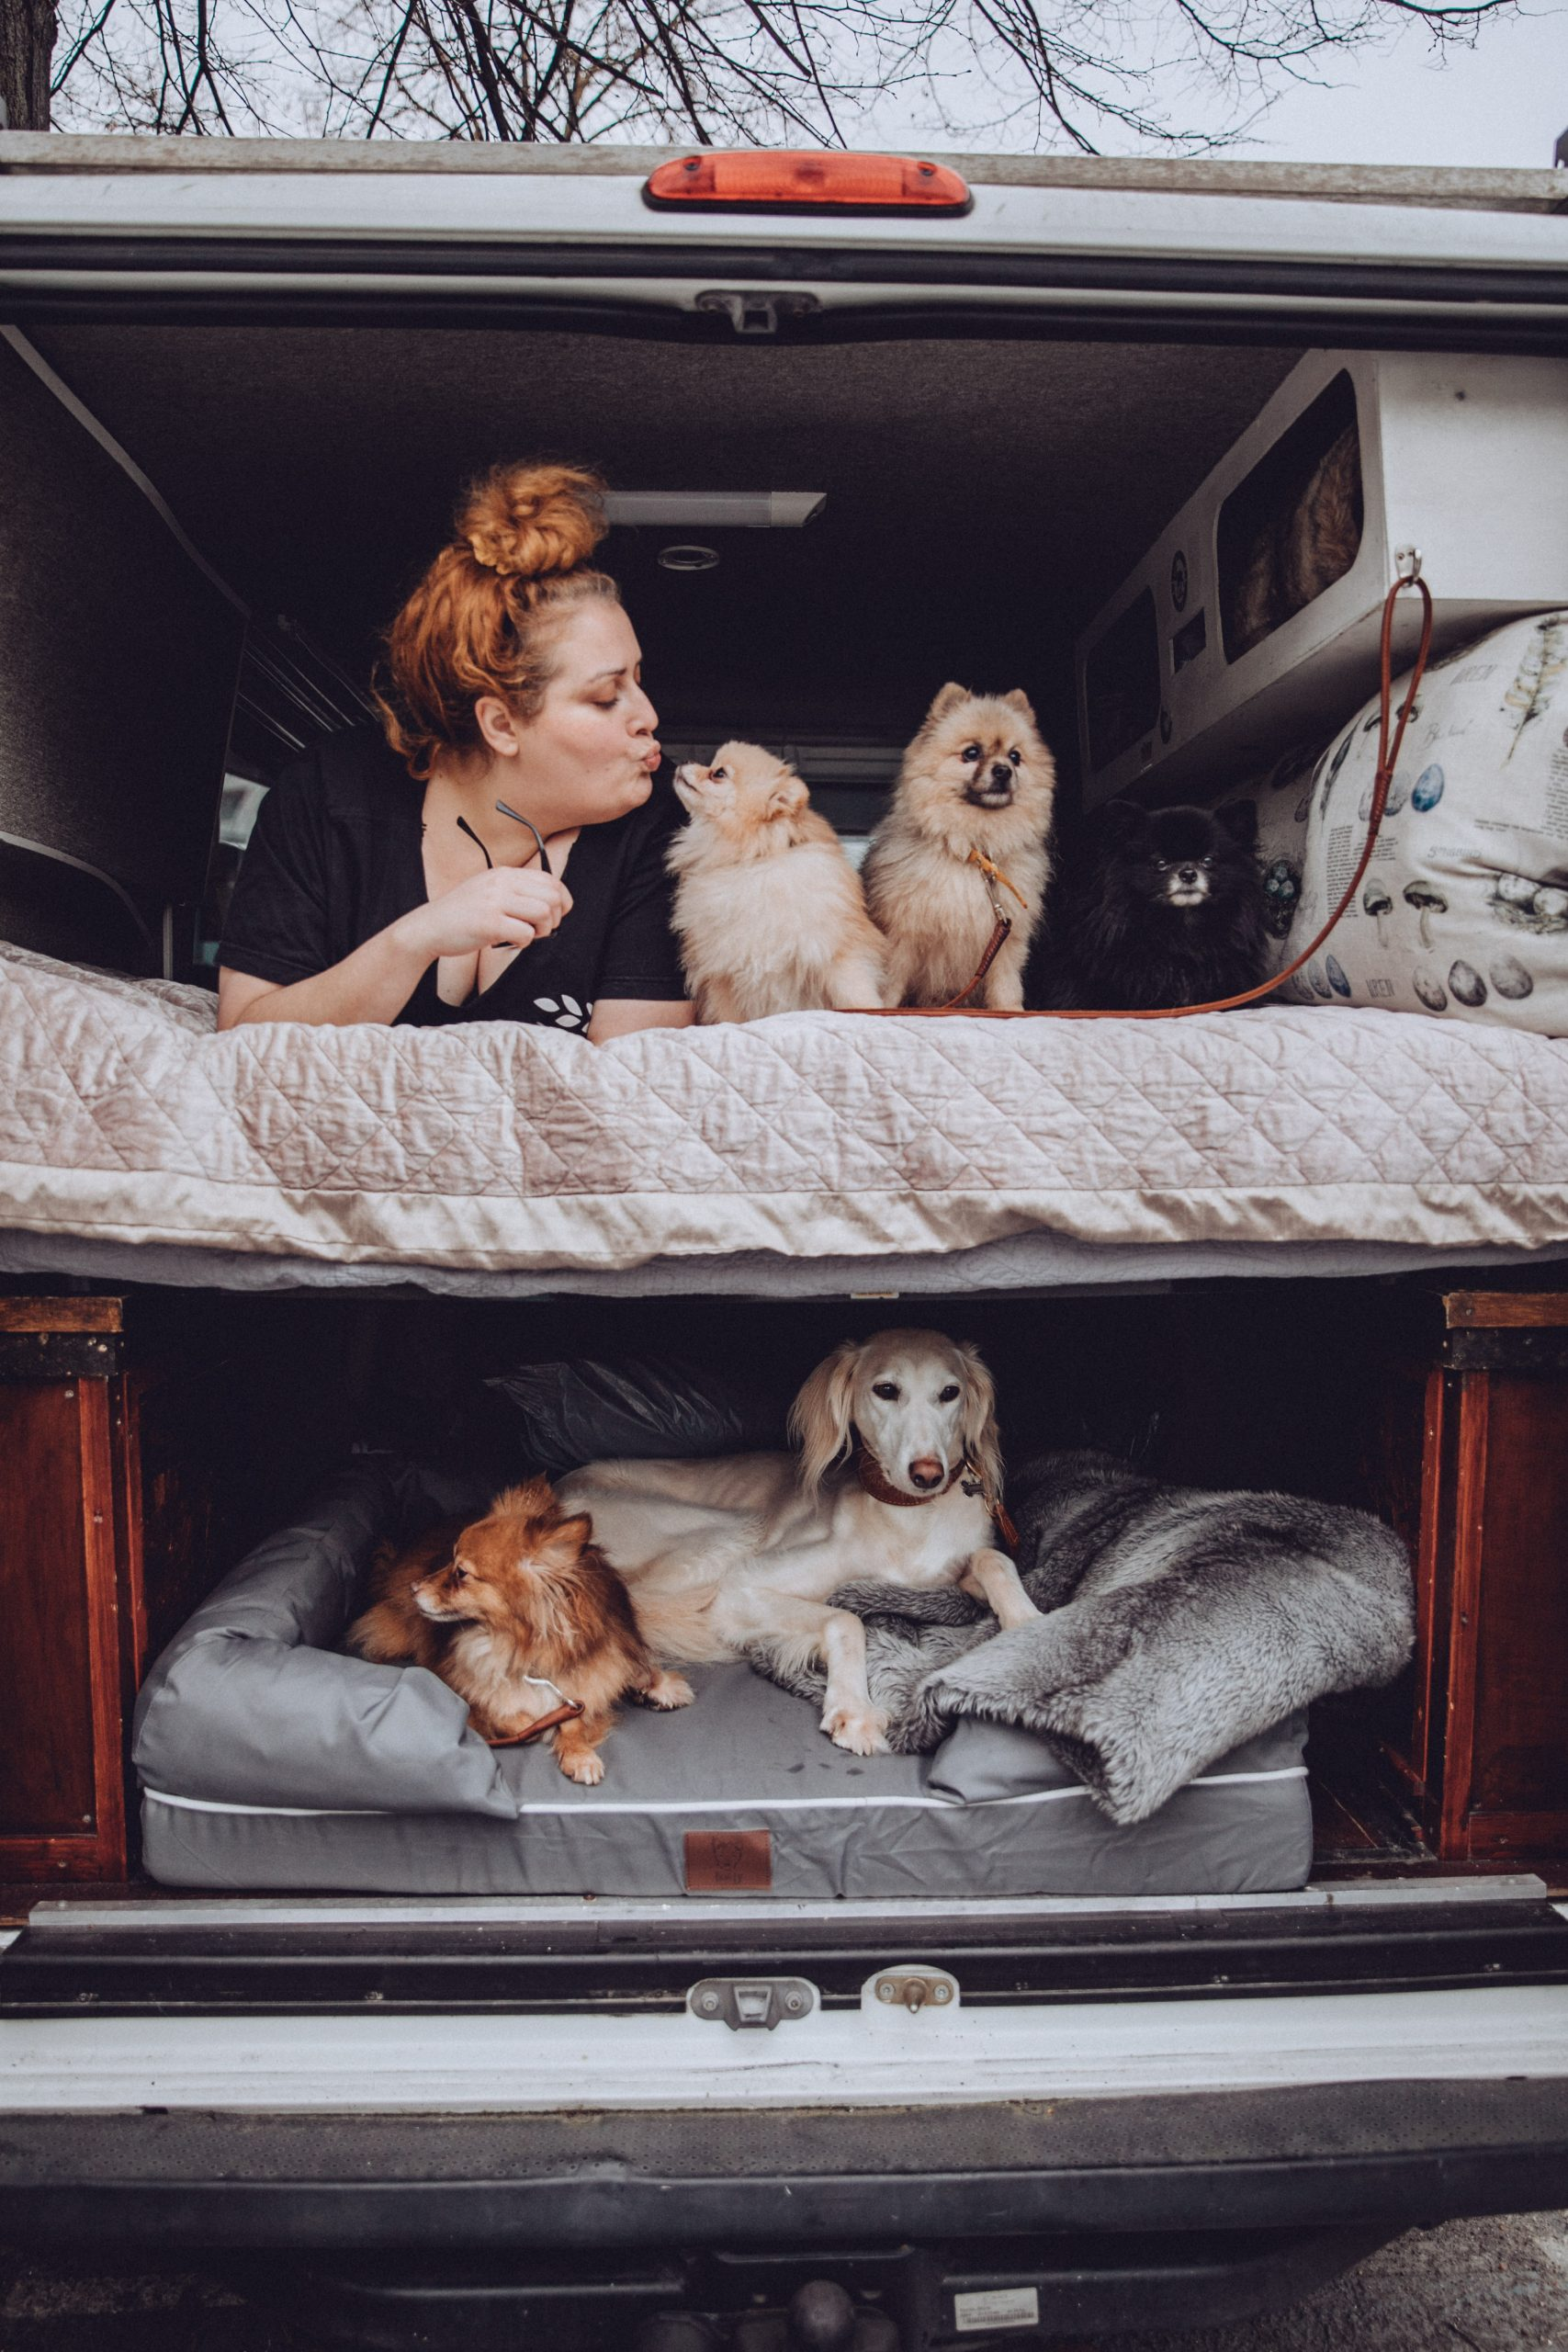 5 Dogs in the Campervan in their Bunty bed